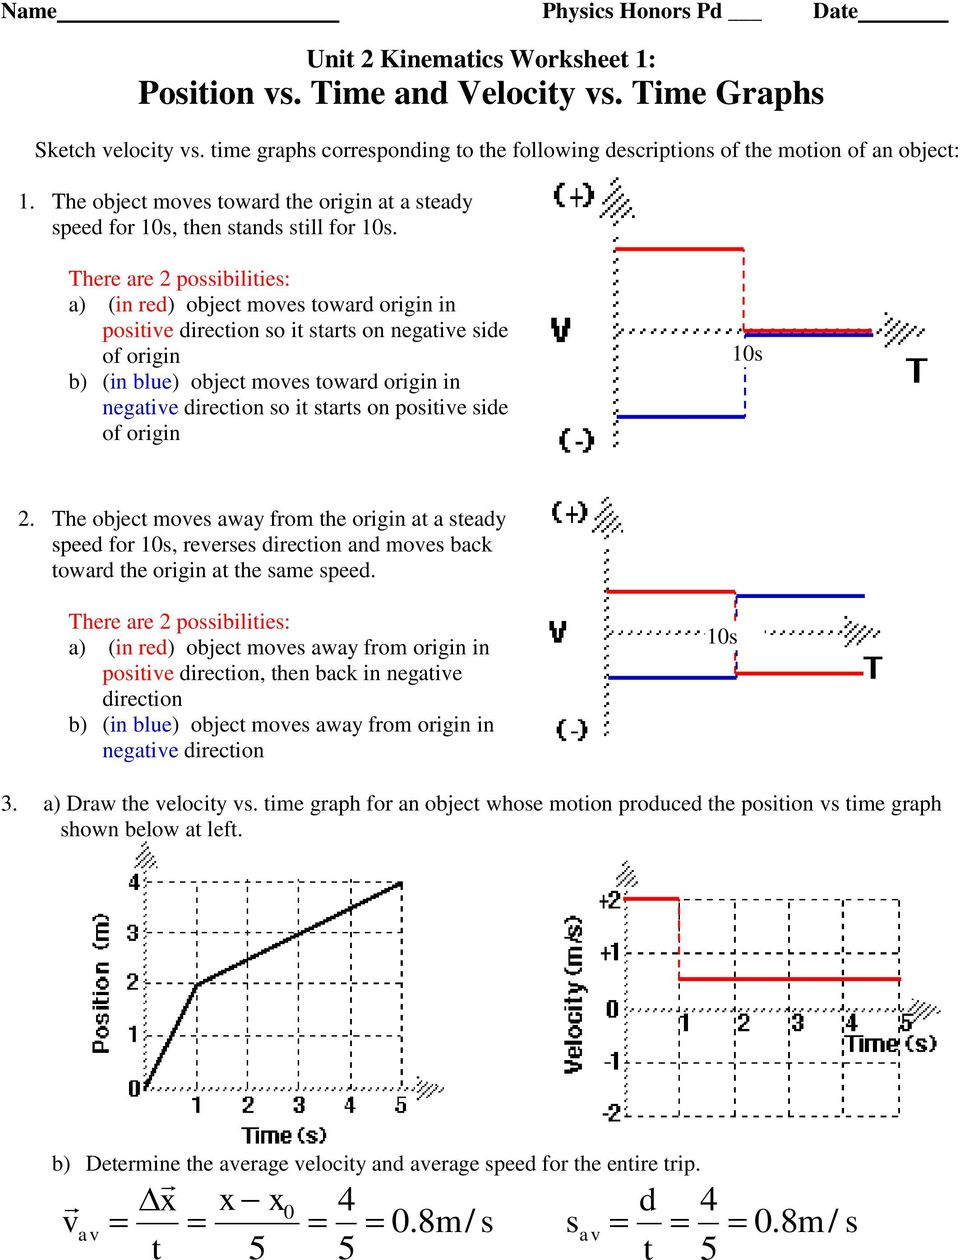 Unit 2 Kinematics Worksheet 1 Position Vs Time And Velocity Vs